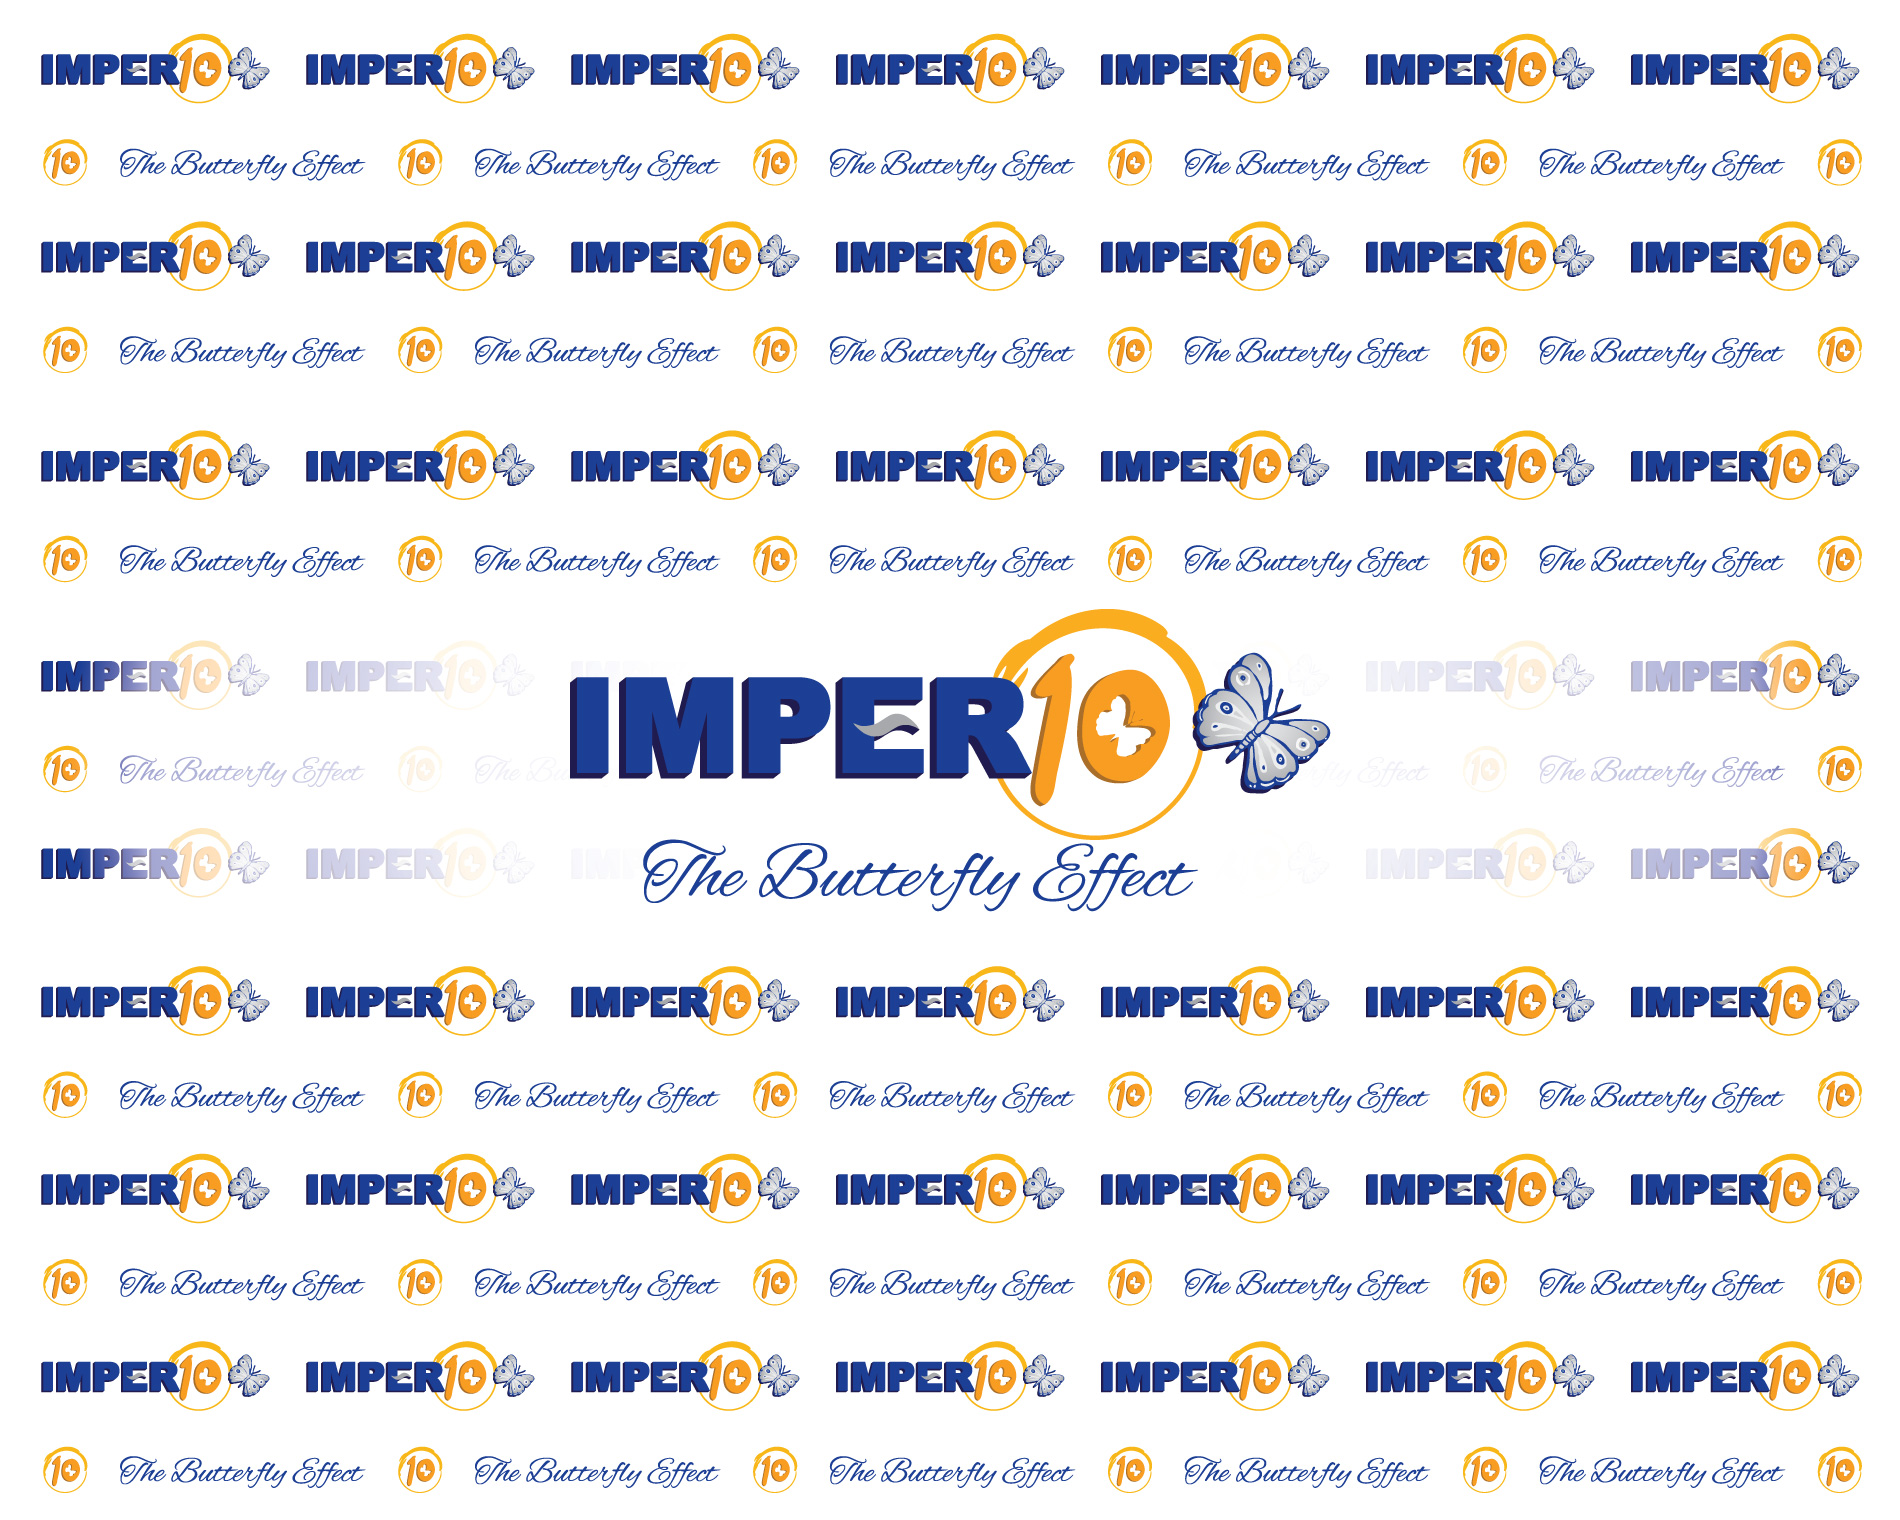 Imperio The butterfly effect